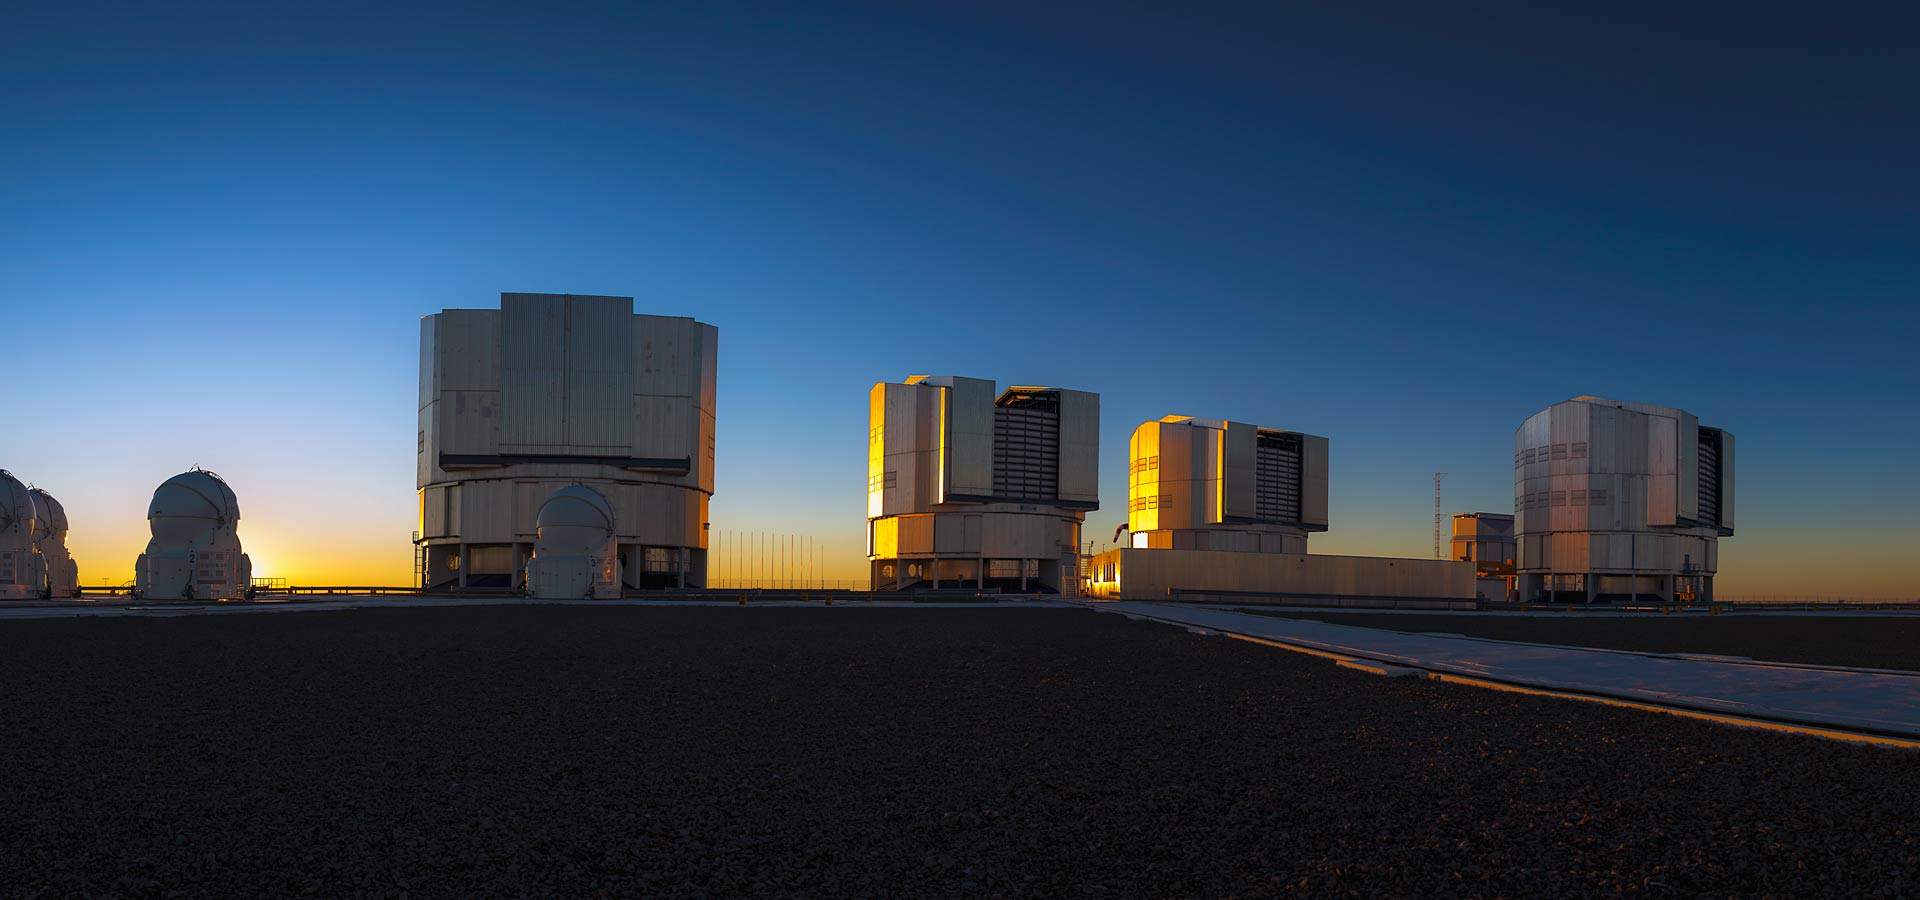 20 Years of Science at Paranal